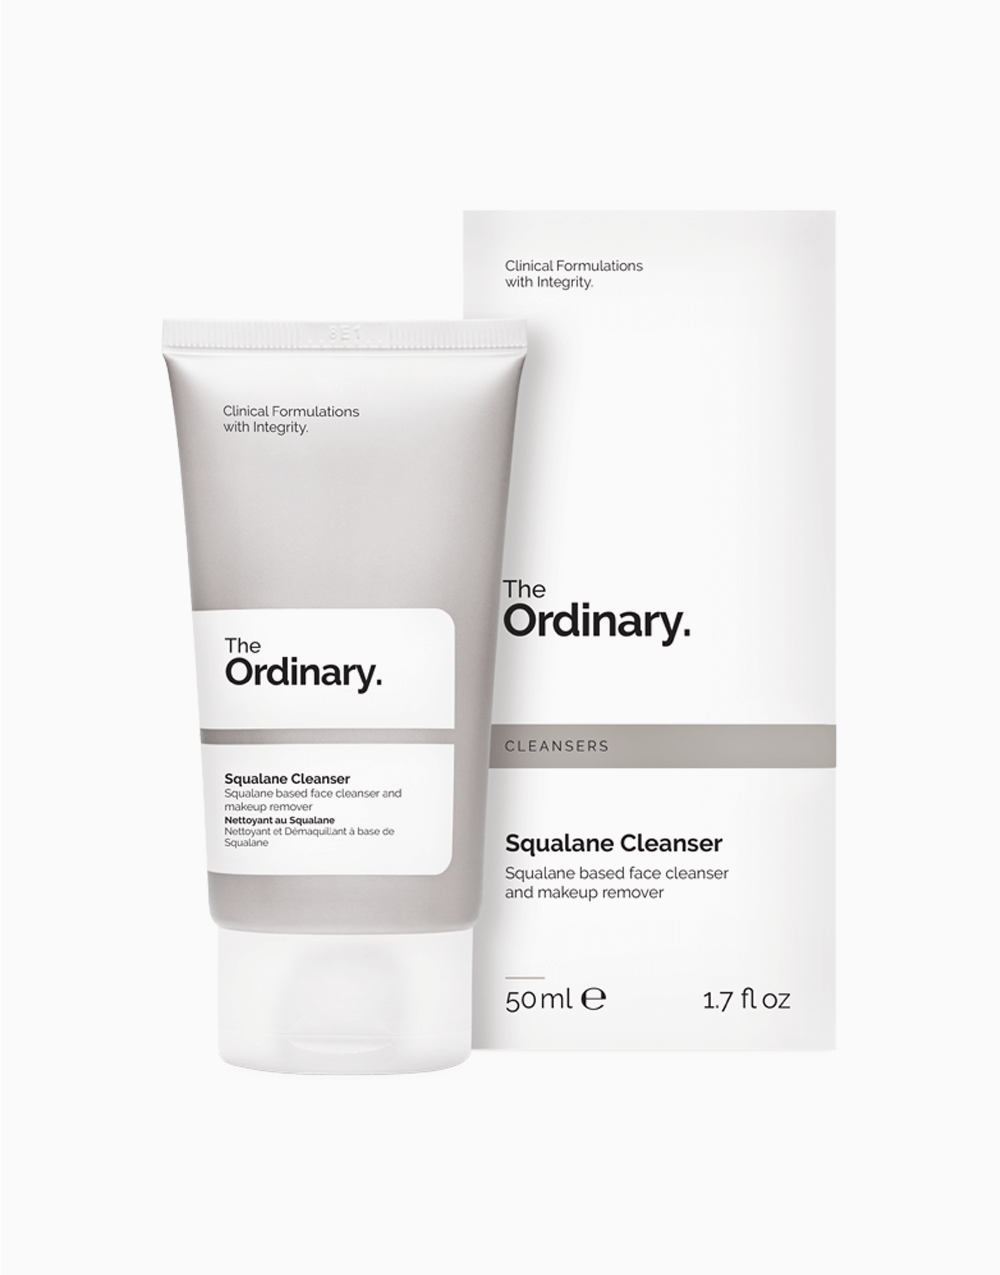 Squalane Cleanser (50ml) by The Ordinary